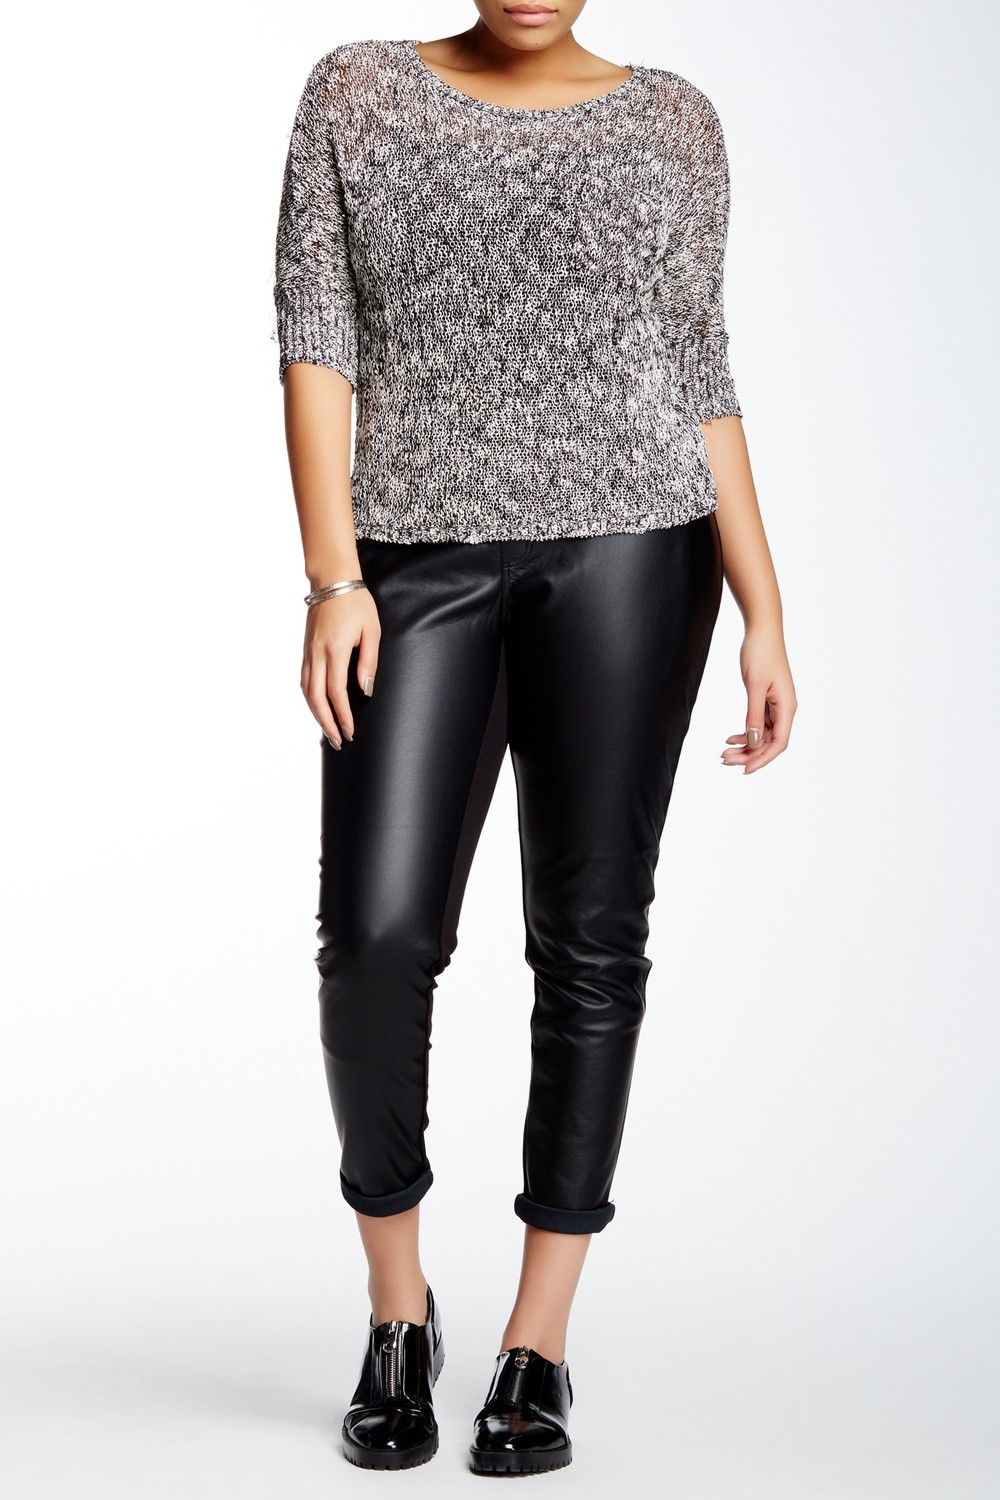 Tart Morgan Mixed Media Pant . Nordstrom Rack.Was: $148 Now: $79 Available in two colors. (Vegan leather)